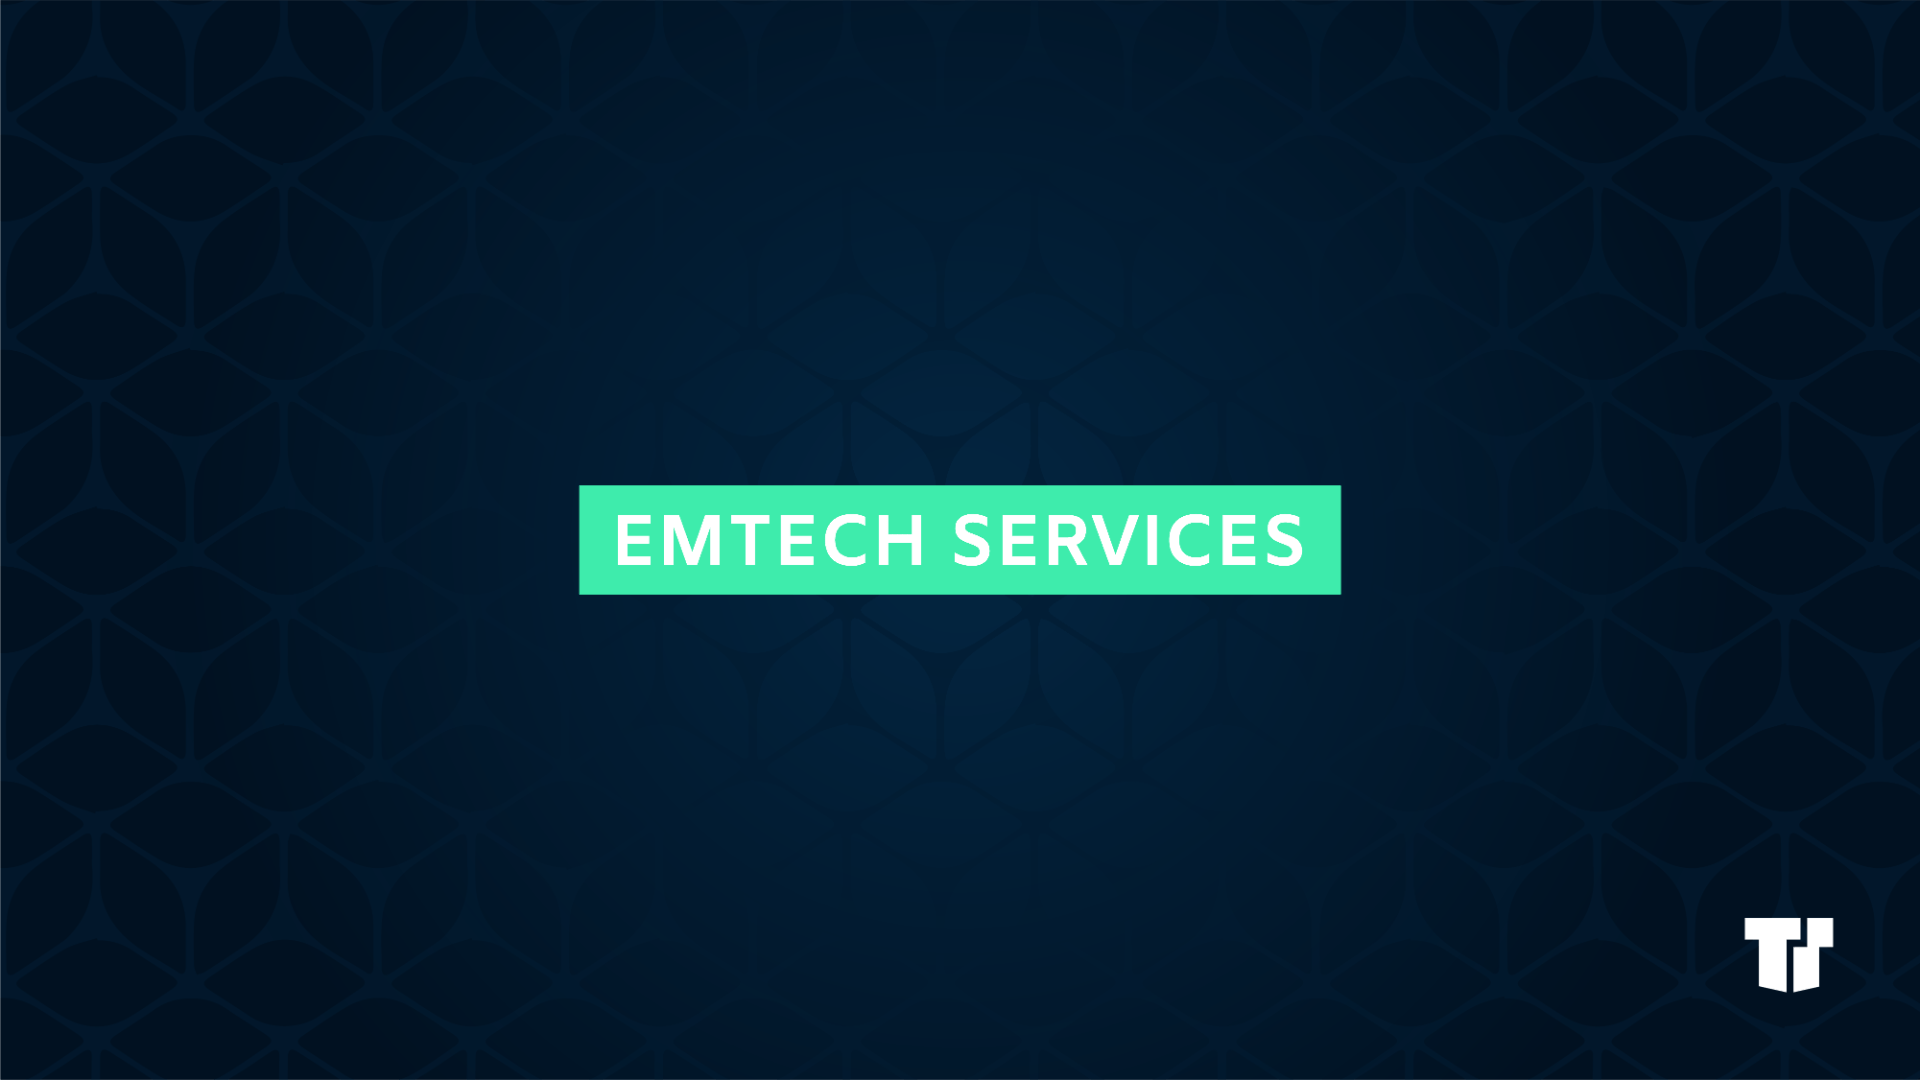 EMTech Services cover image